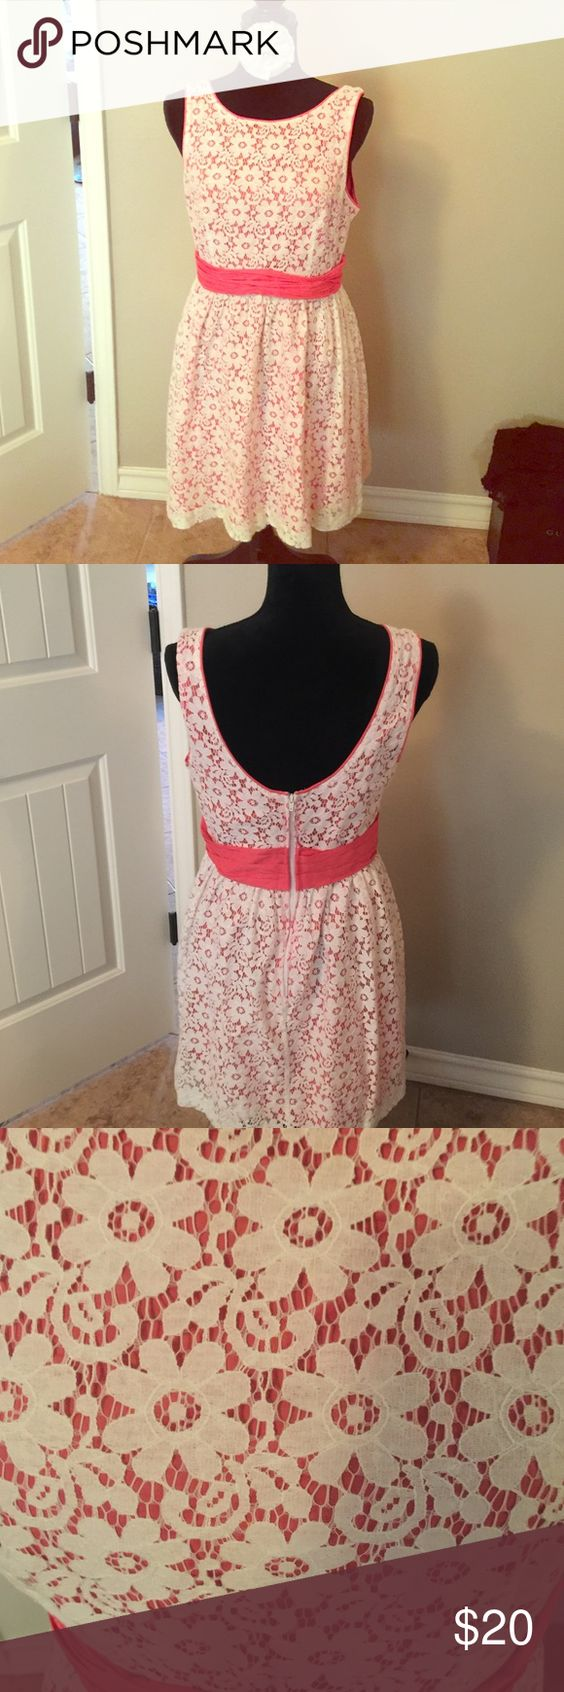 Coral Crochet Dress Beautiful croquet dress in coral- Large (fits like a 6/8) Forever 21 Dresses Mini